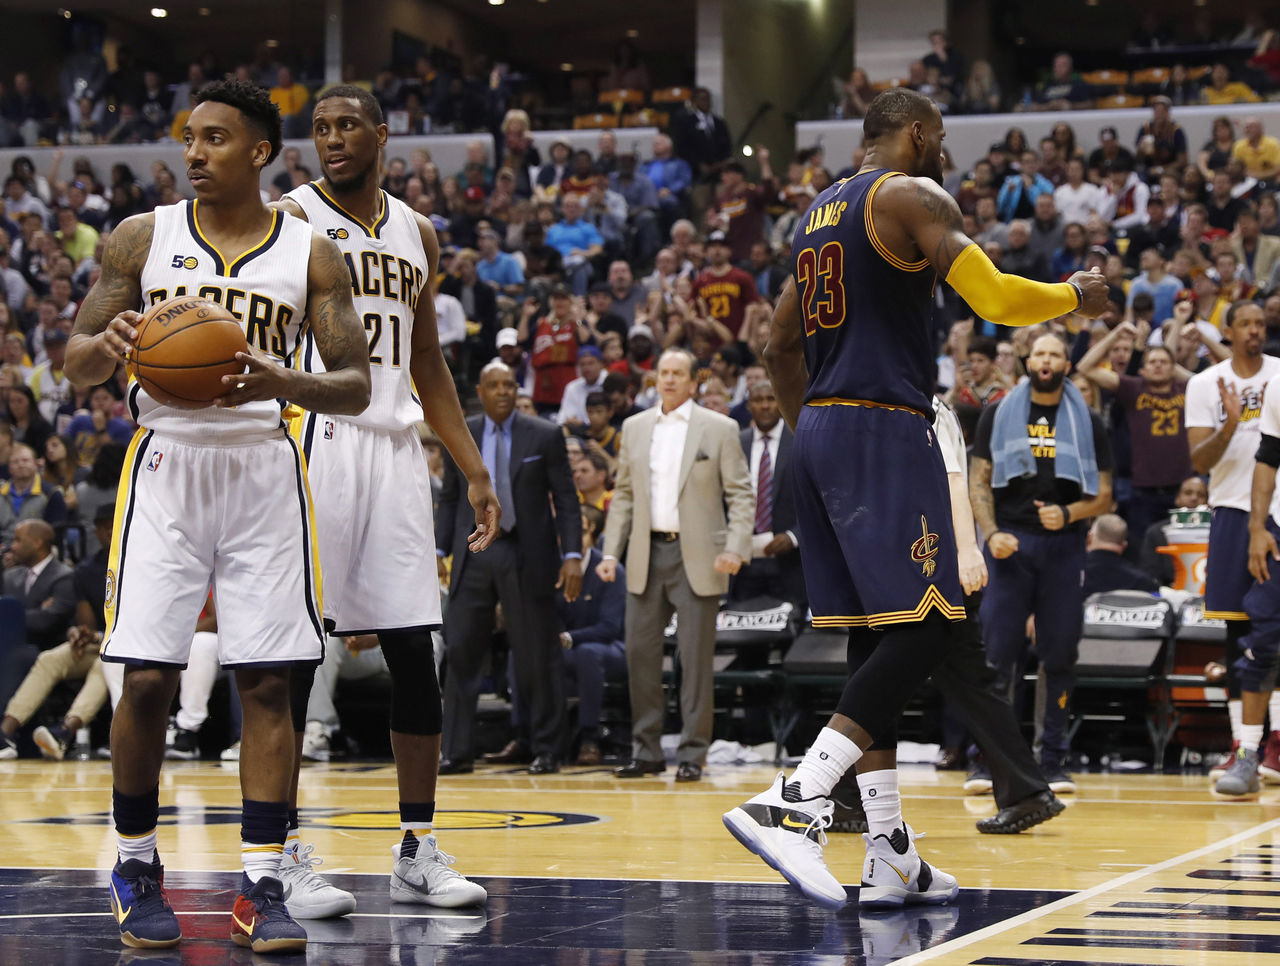 Cropped_2017-04-23t182845z_300311926_nocid_rtrmadp_3_nba-playoffs-cleveland-cavaliers-at-indiana-pacers